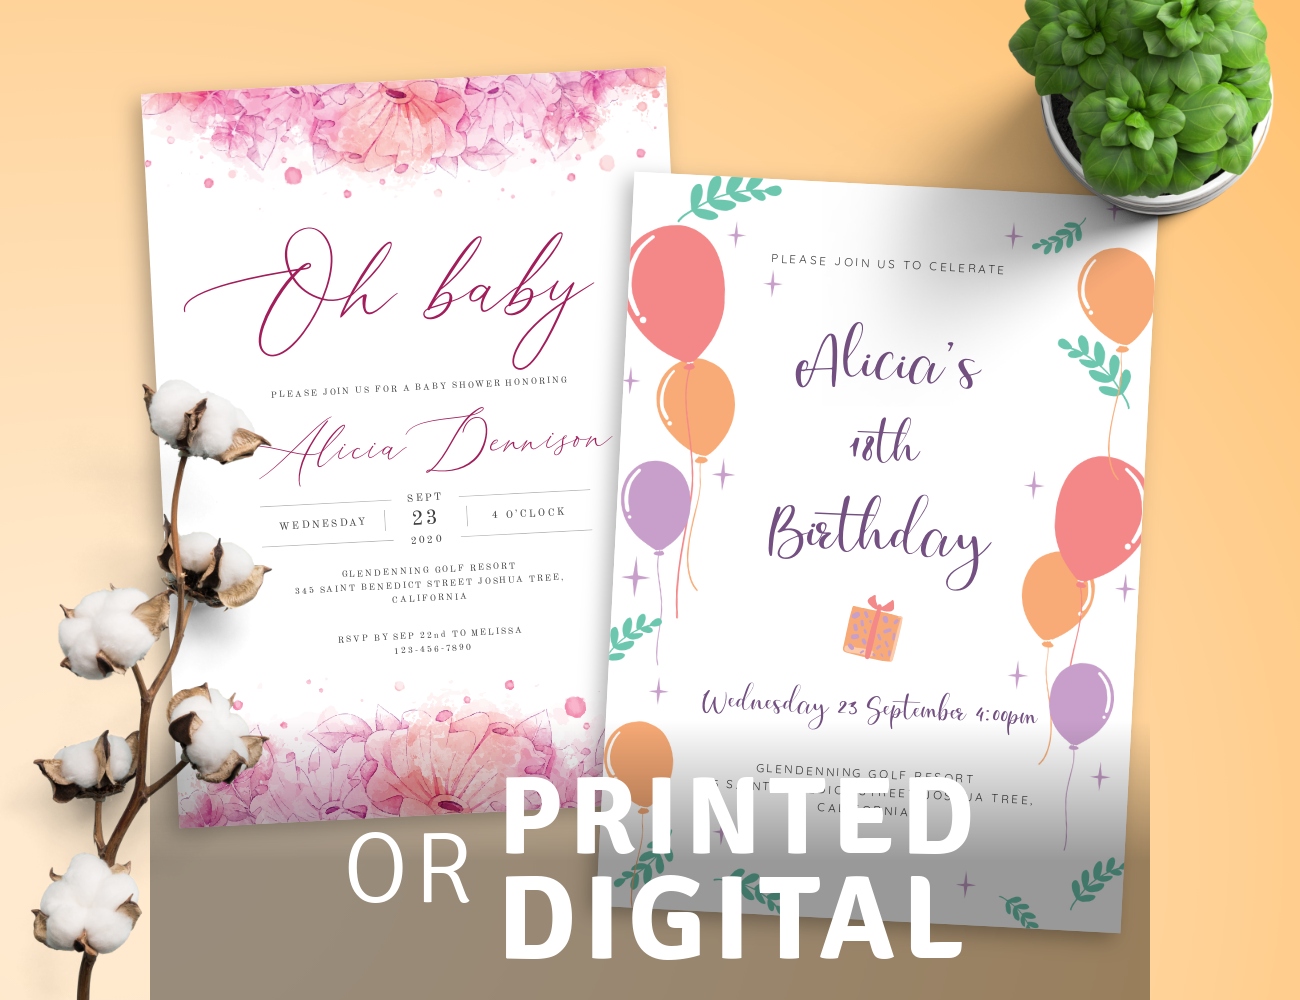 Download or Print Invitation Templates